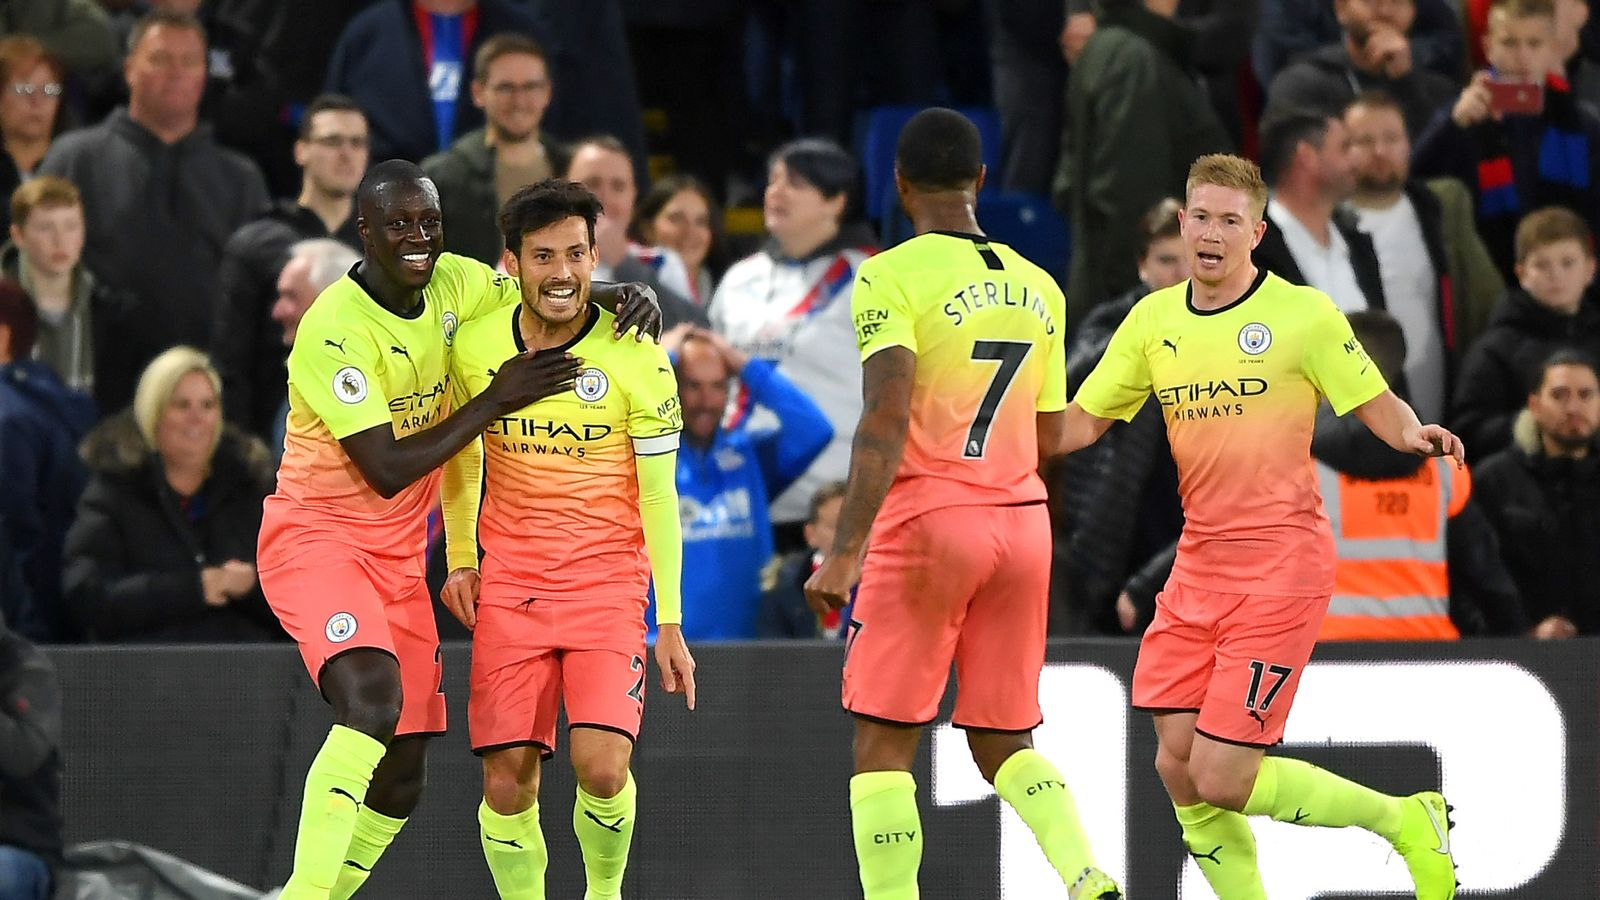 Crystal Palace 0-2 Manchester City: Pep Guardiola's side back on track after nervy win